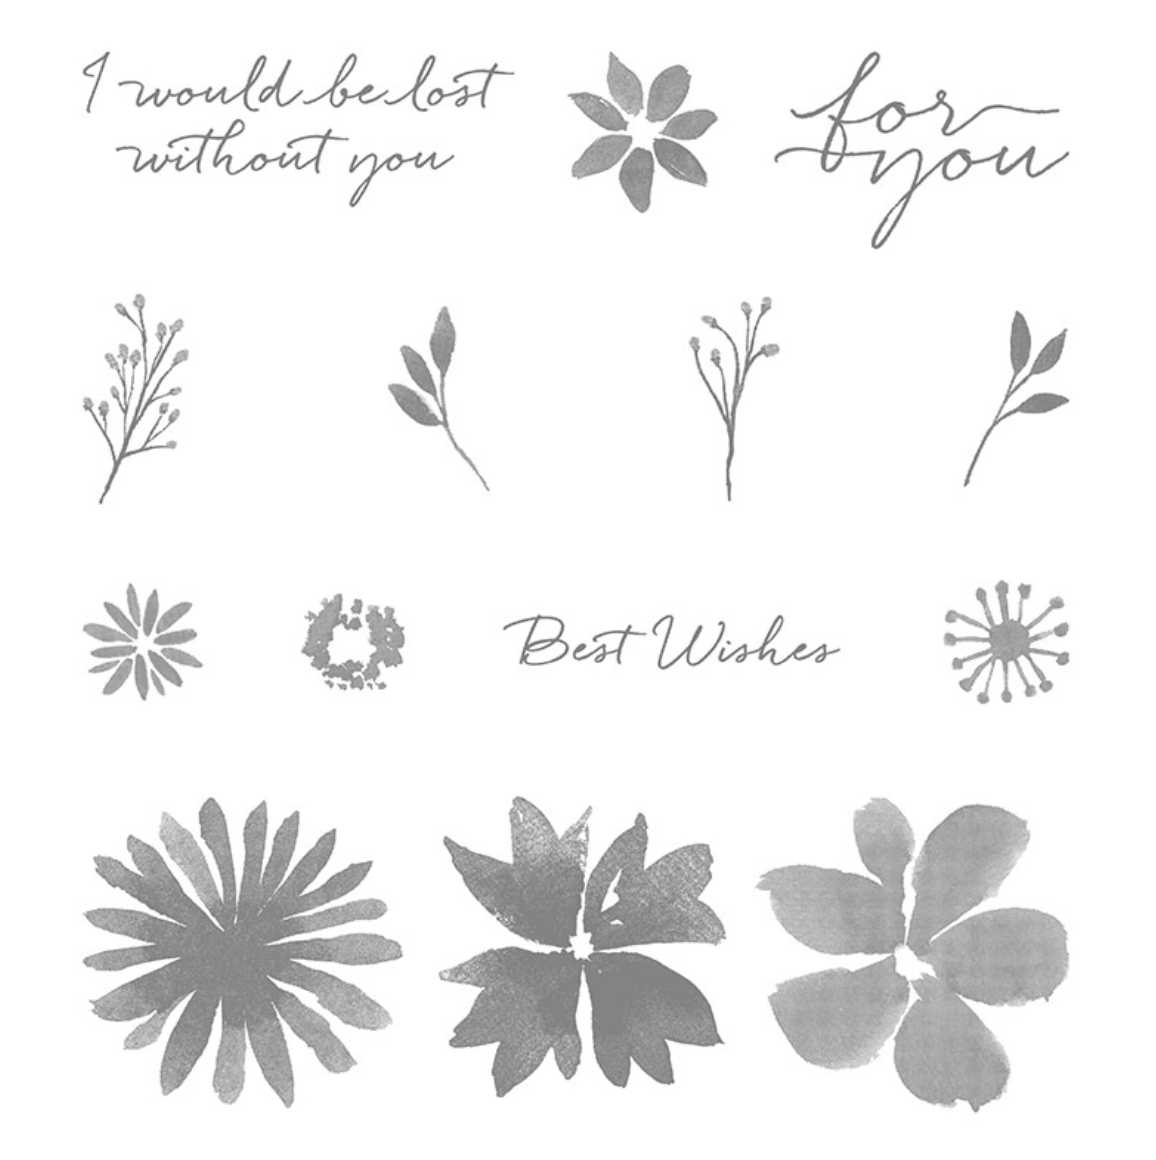 Blooms & Wishes from Stampin' Up!